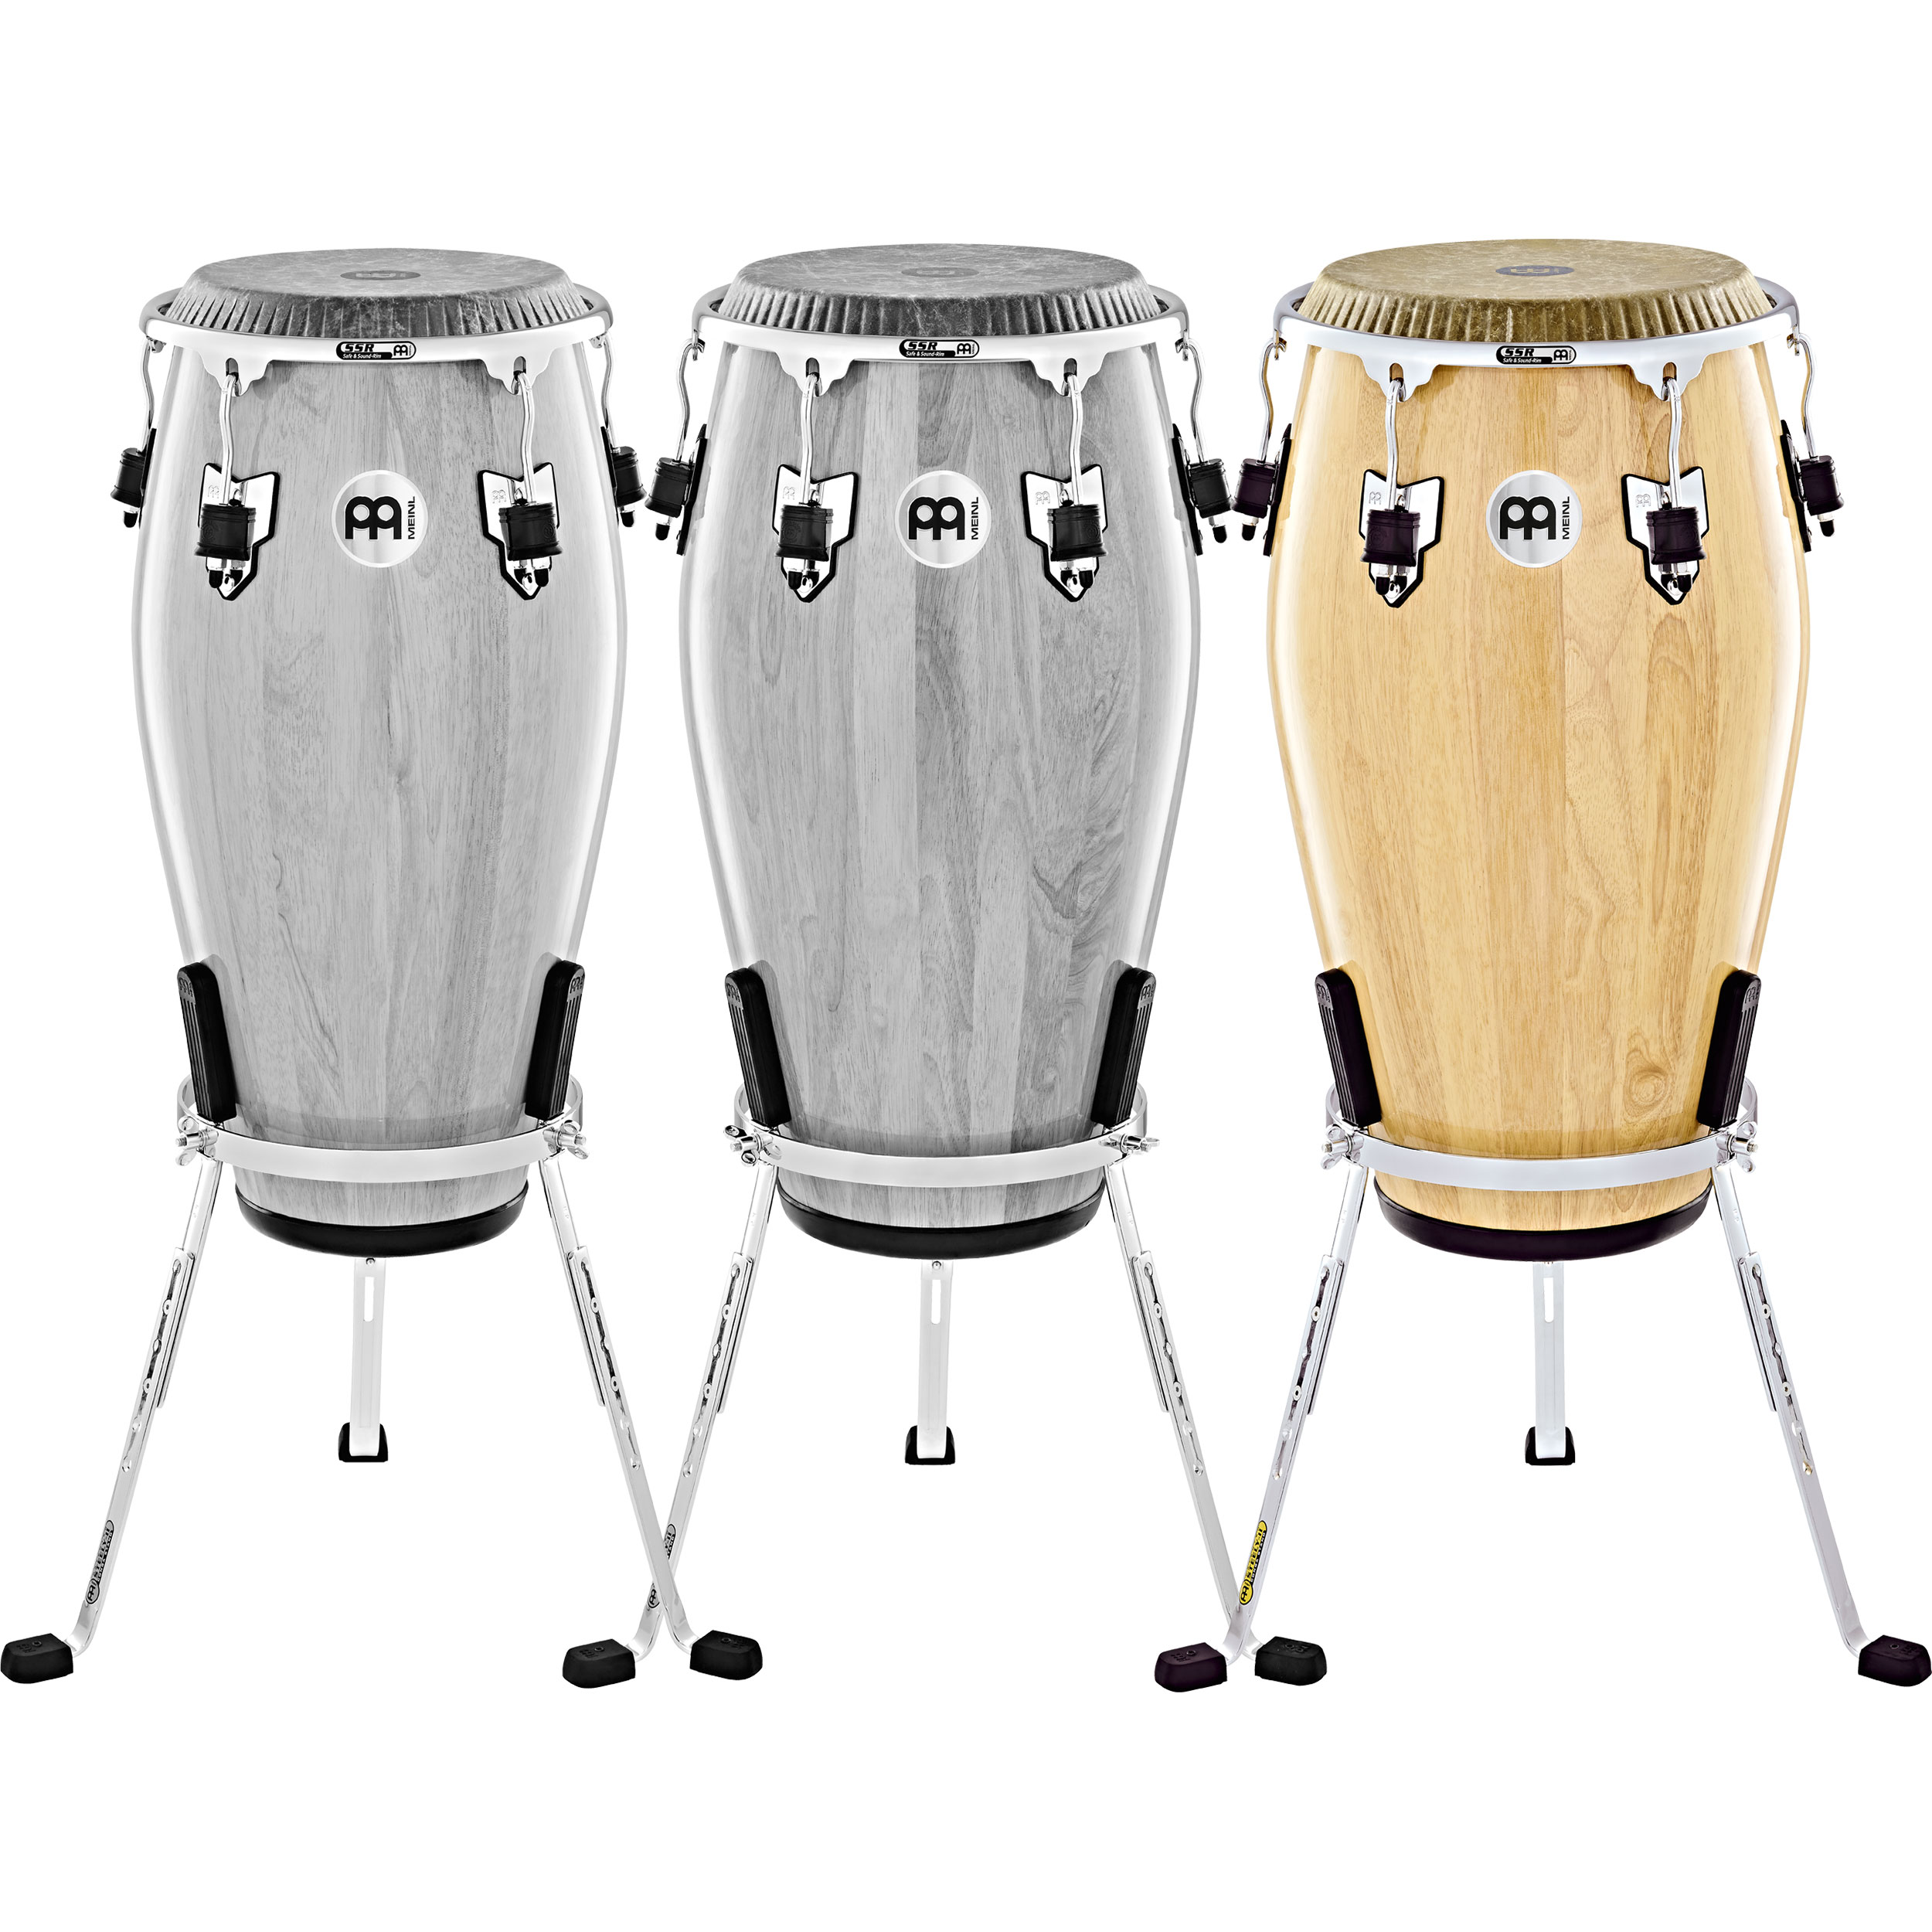 """Meinl 12.5"""" Marathon Exclusive Tumba Conga in Natural with Fiberskyn Head and Chrome Hardware"""